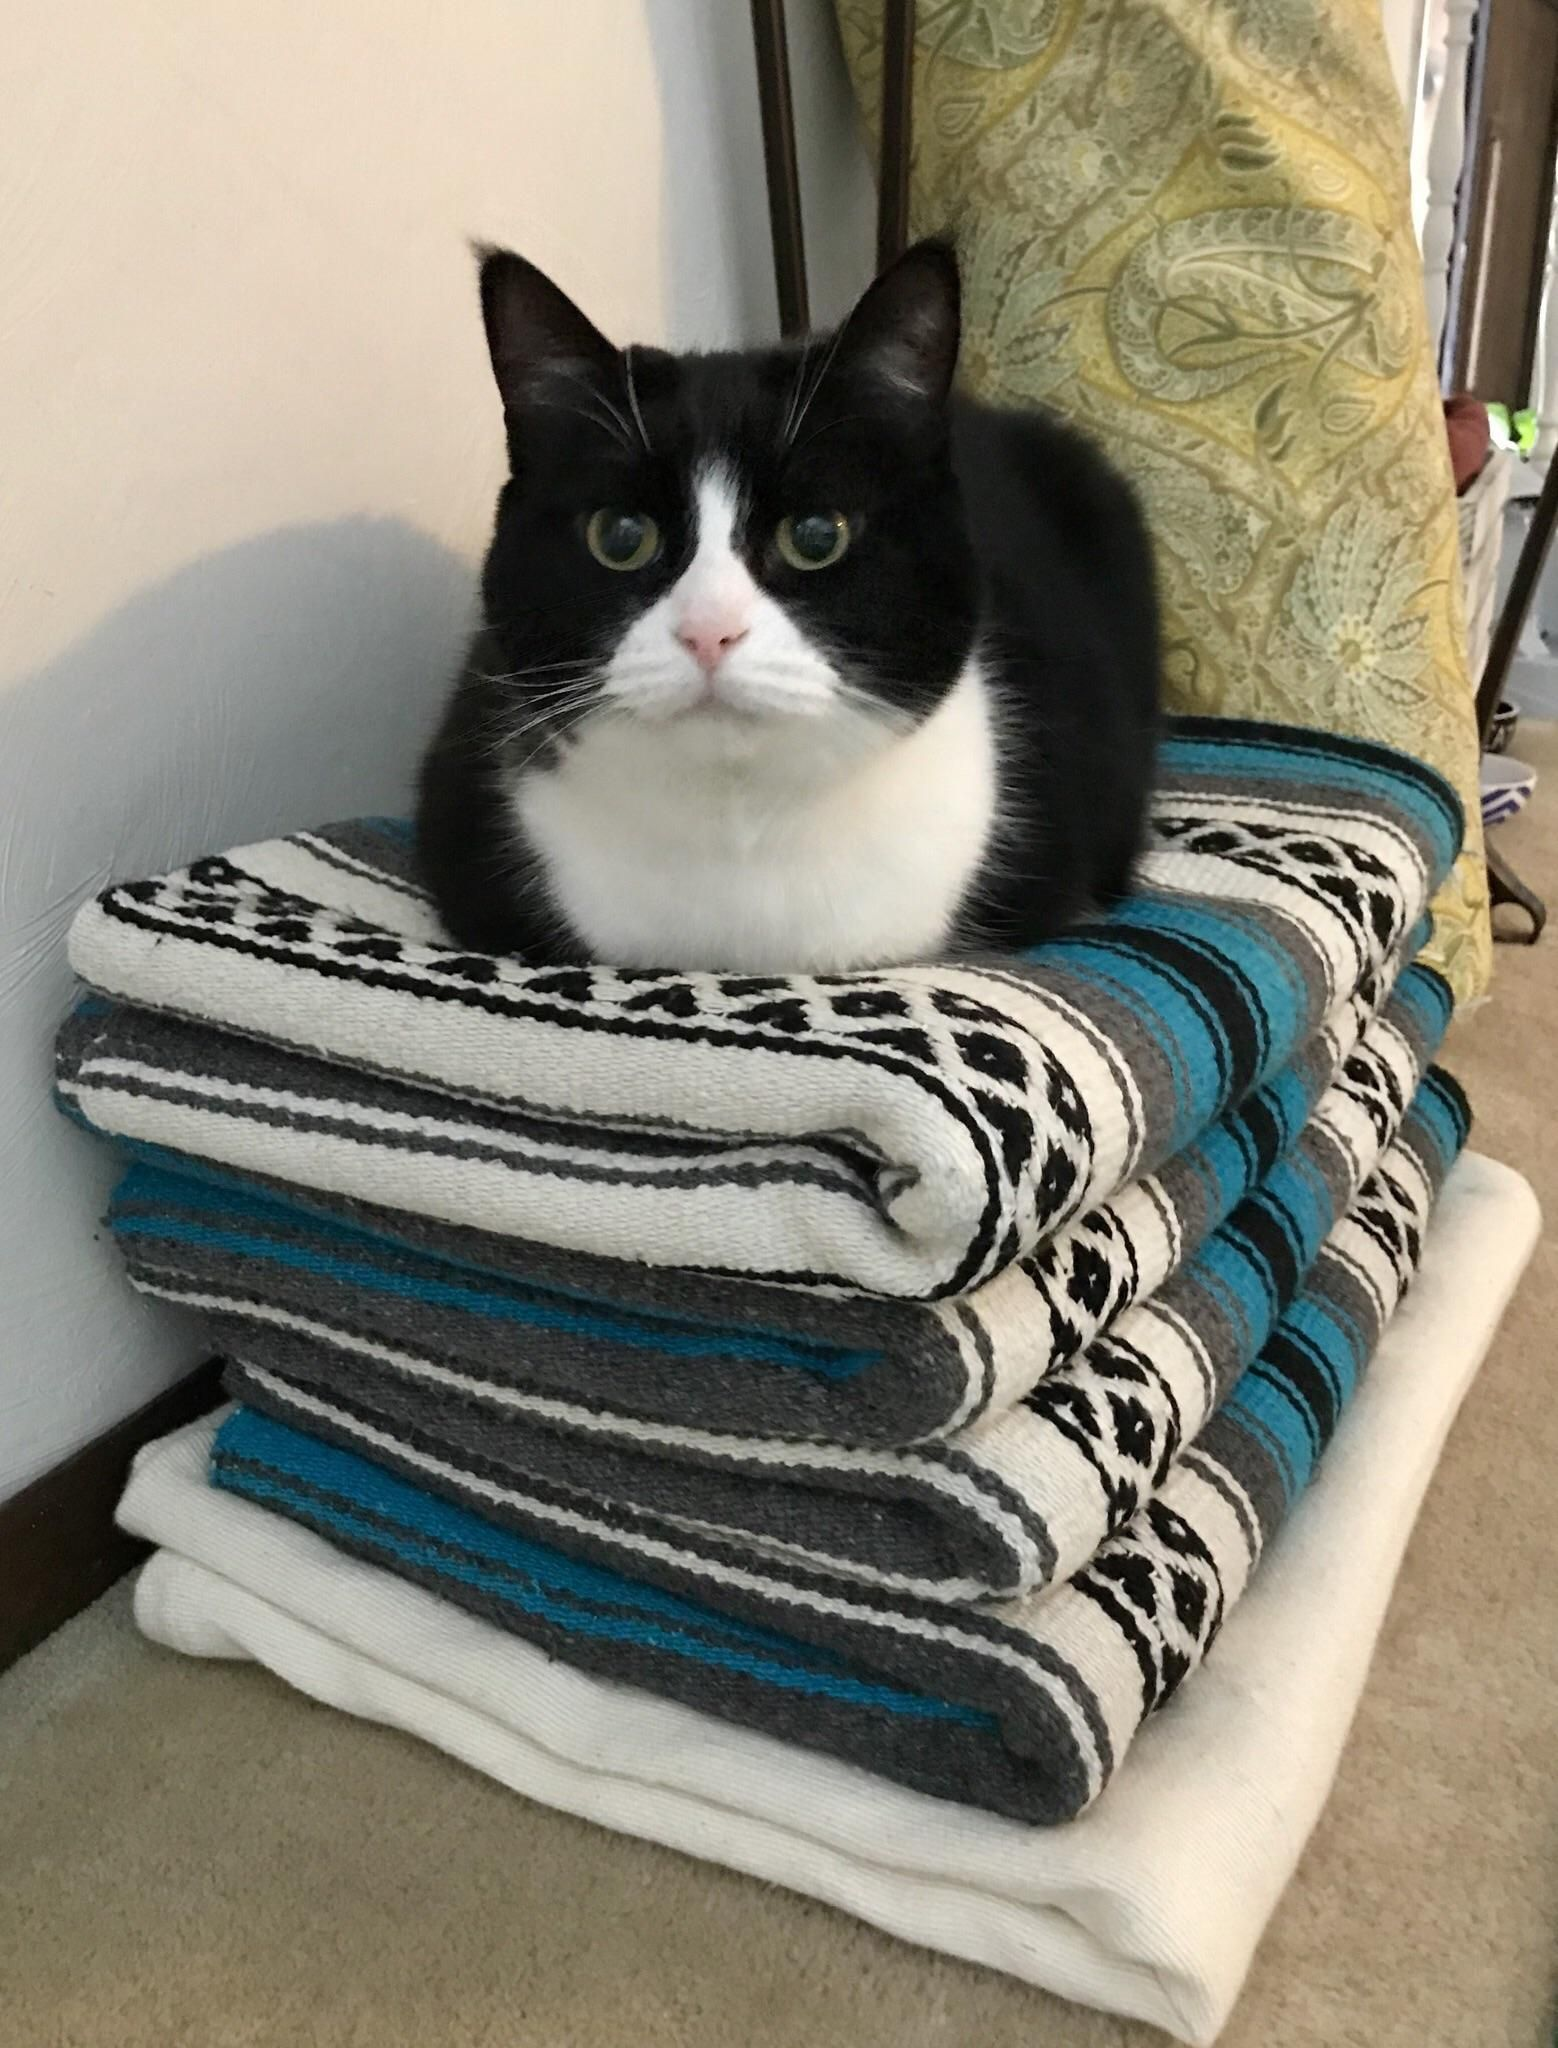 Her Name Is Penny And Shes My Penny Loaf I Redd It Submitted By Littlestlauren To R Catloaf 5 Comments Original F Cute Cats Kittens Cutest Beautiful Cats